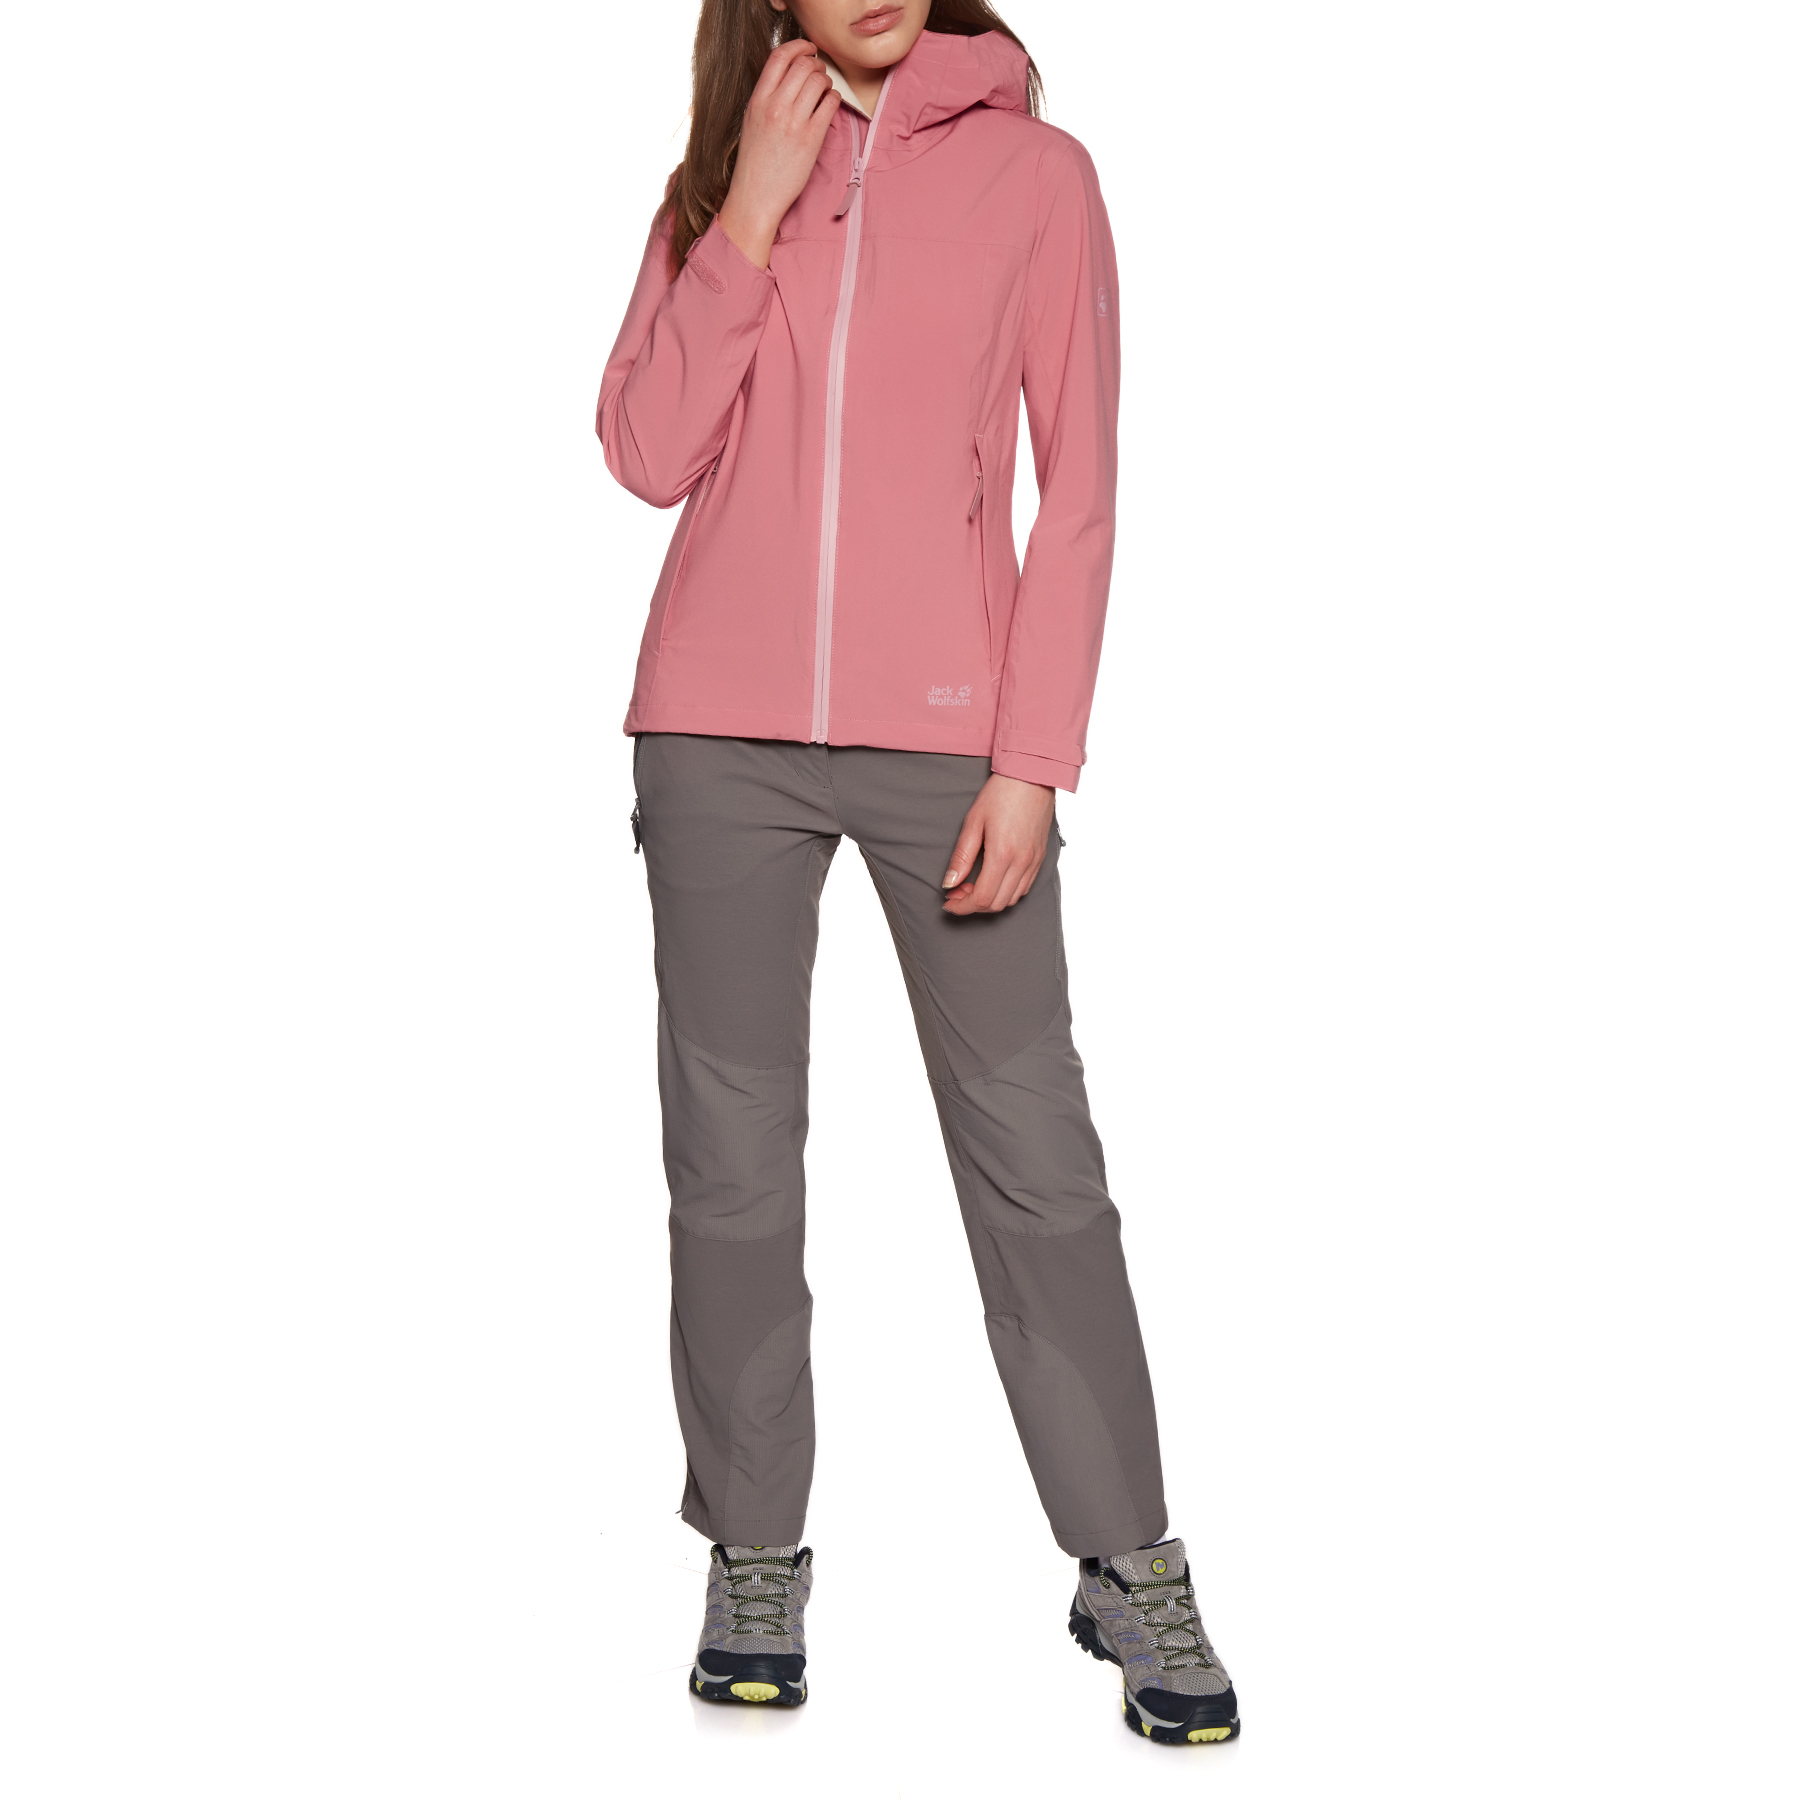 Jack Wolfskin Arco Fleece | Free Delivery Options